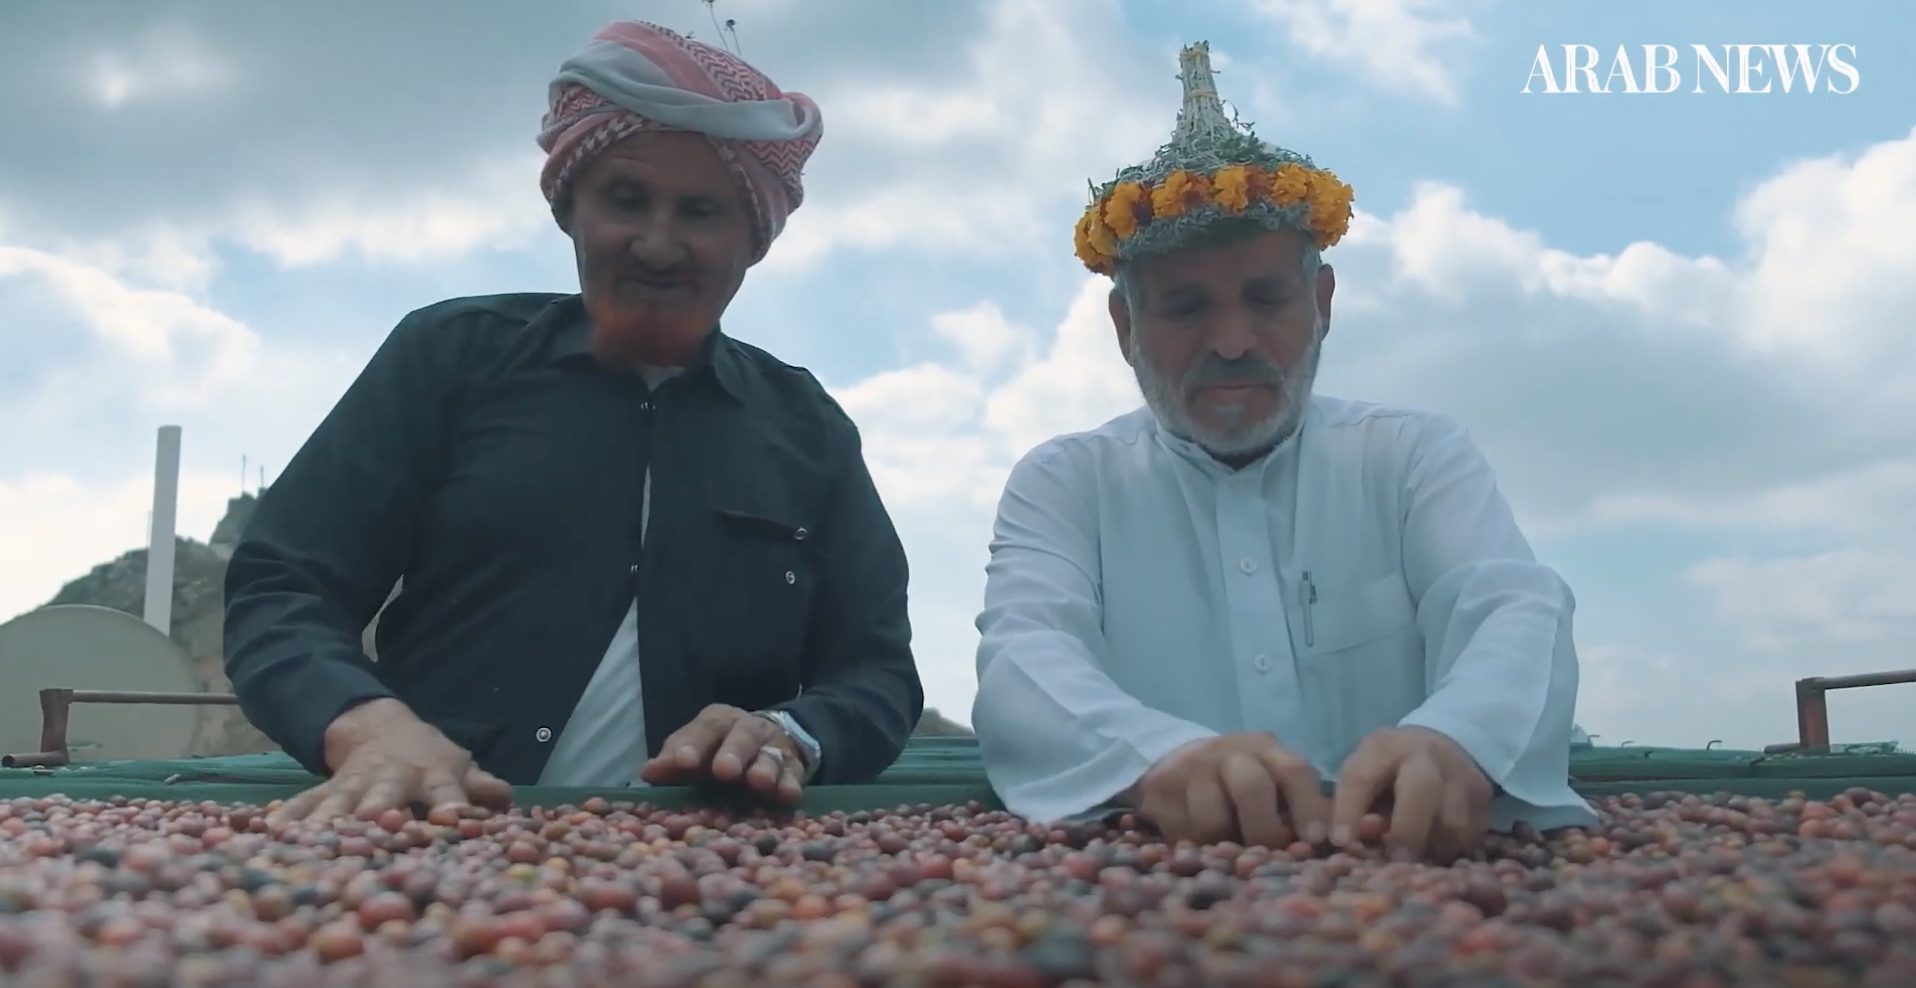 Coffee making in Saudi Arabia